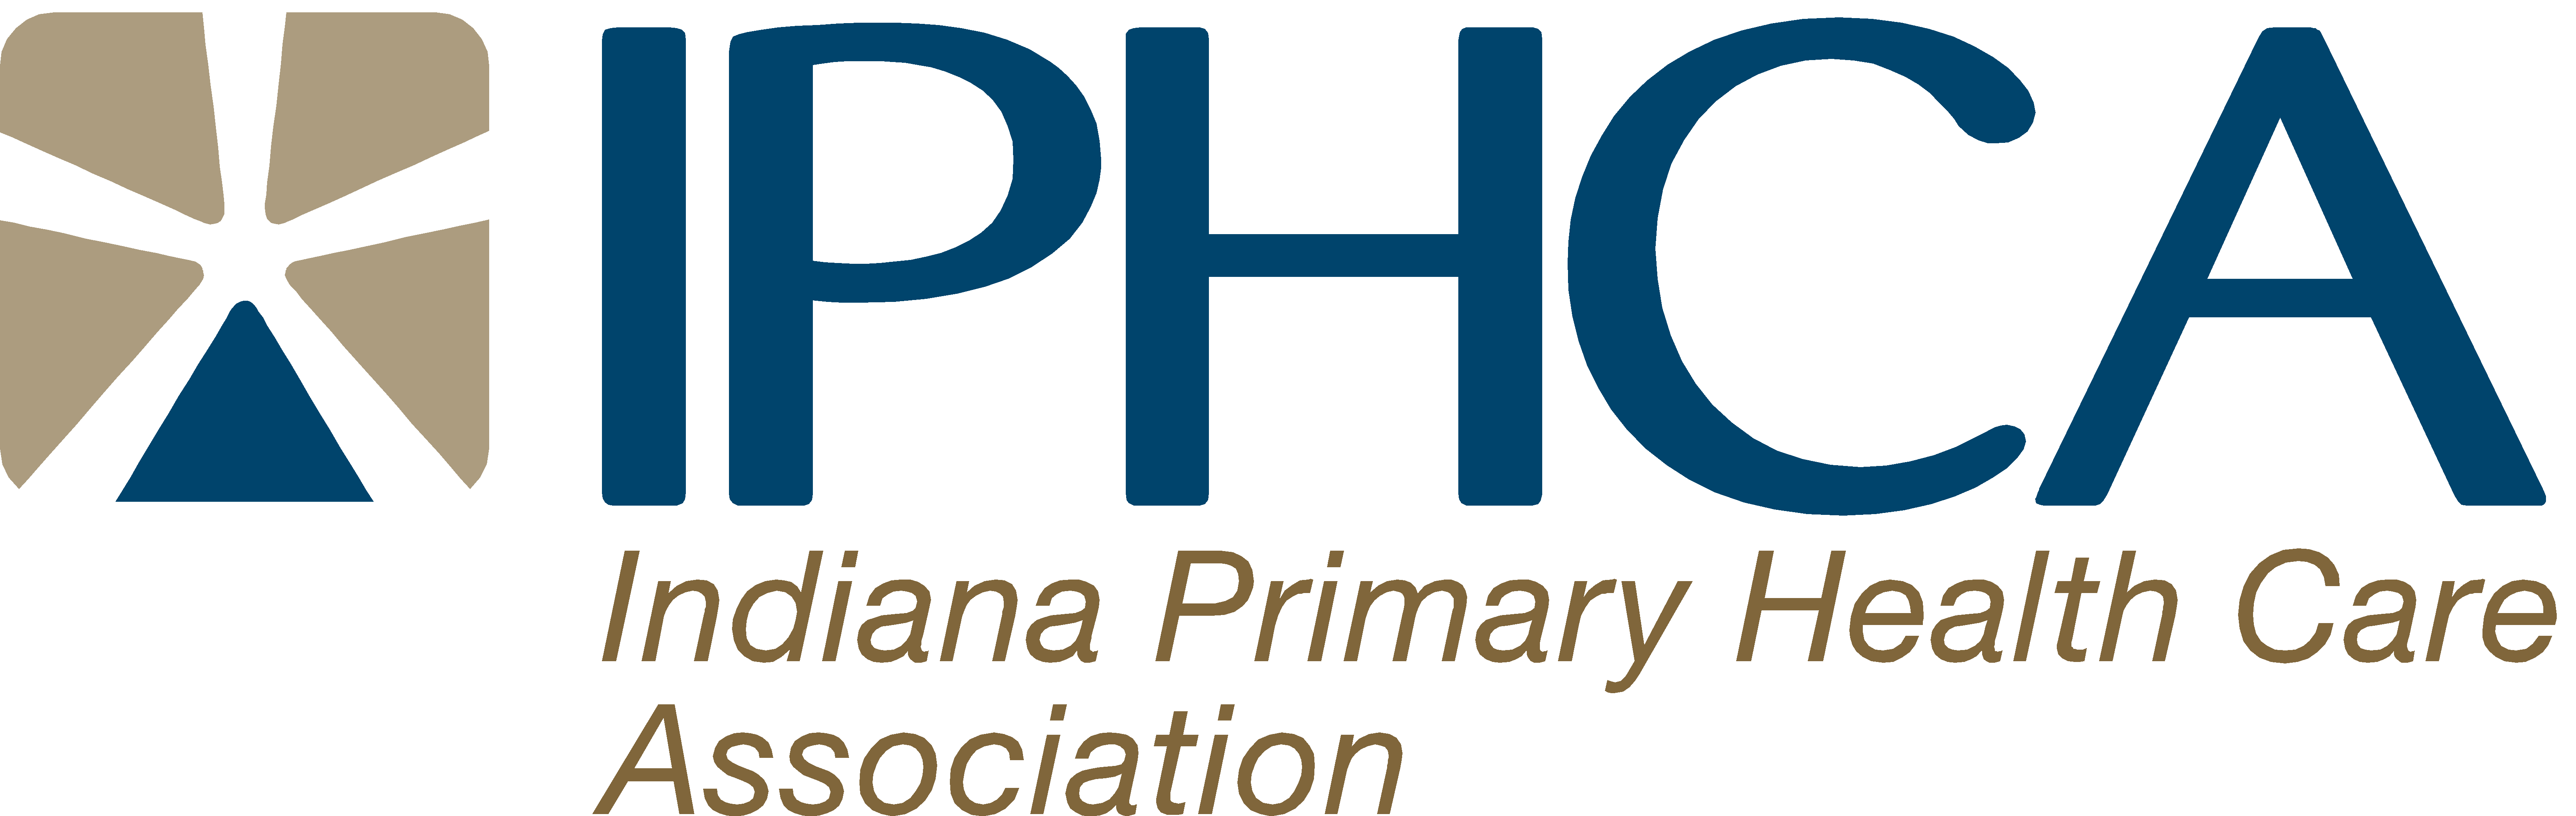 Indiana Primary Health Care Association logo